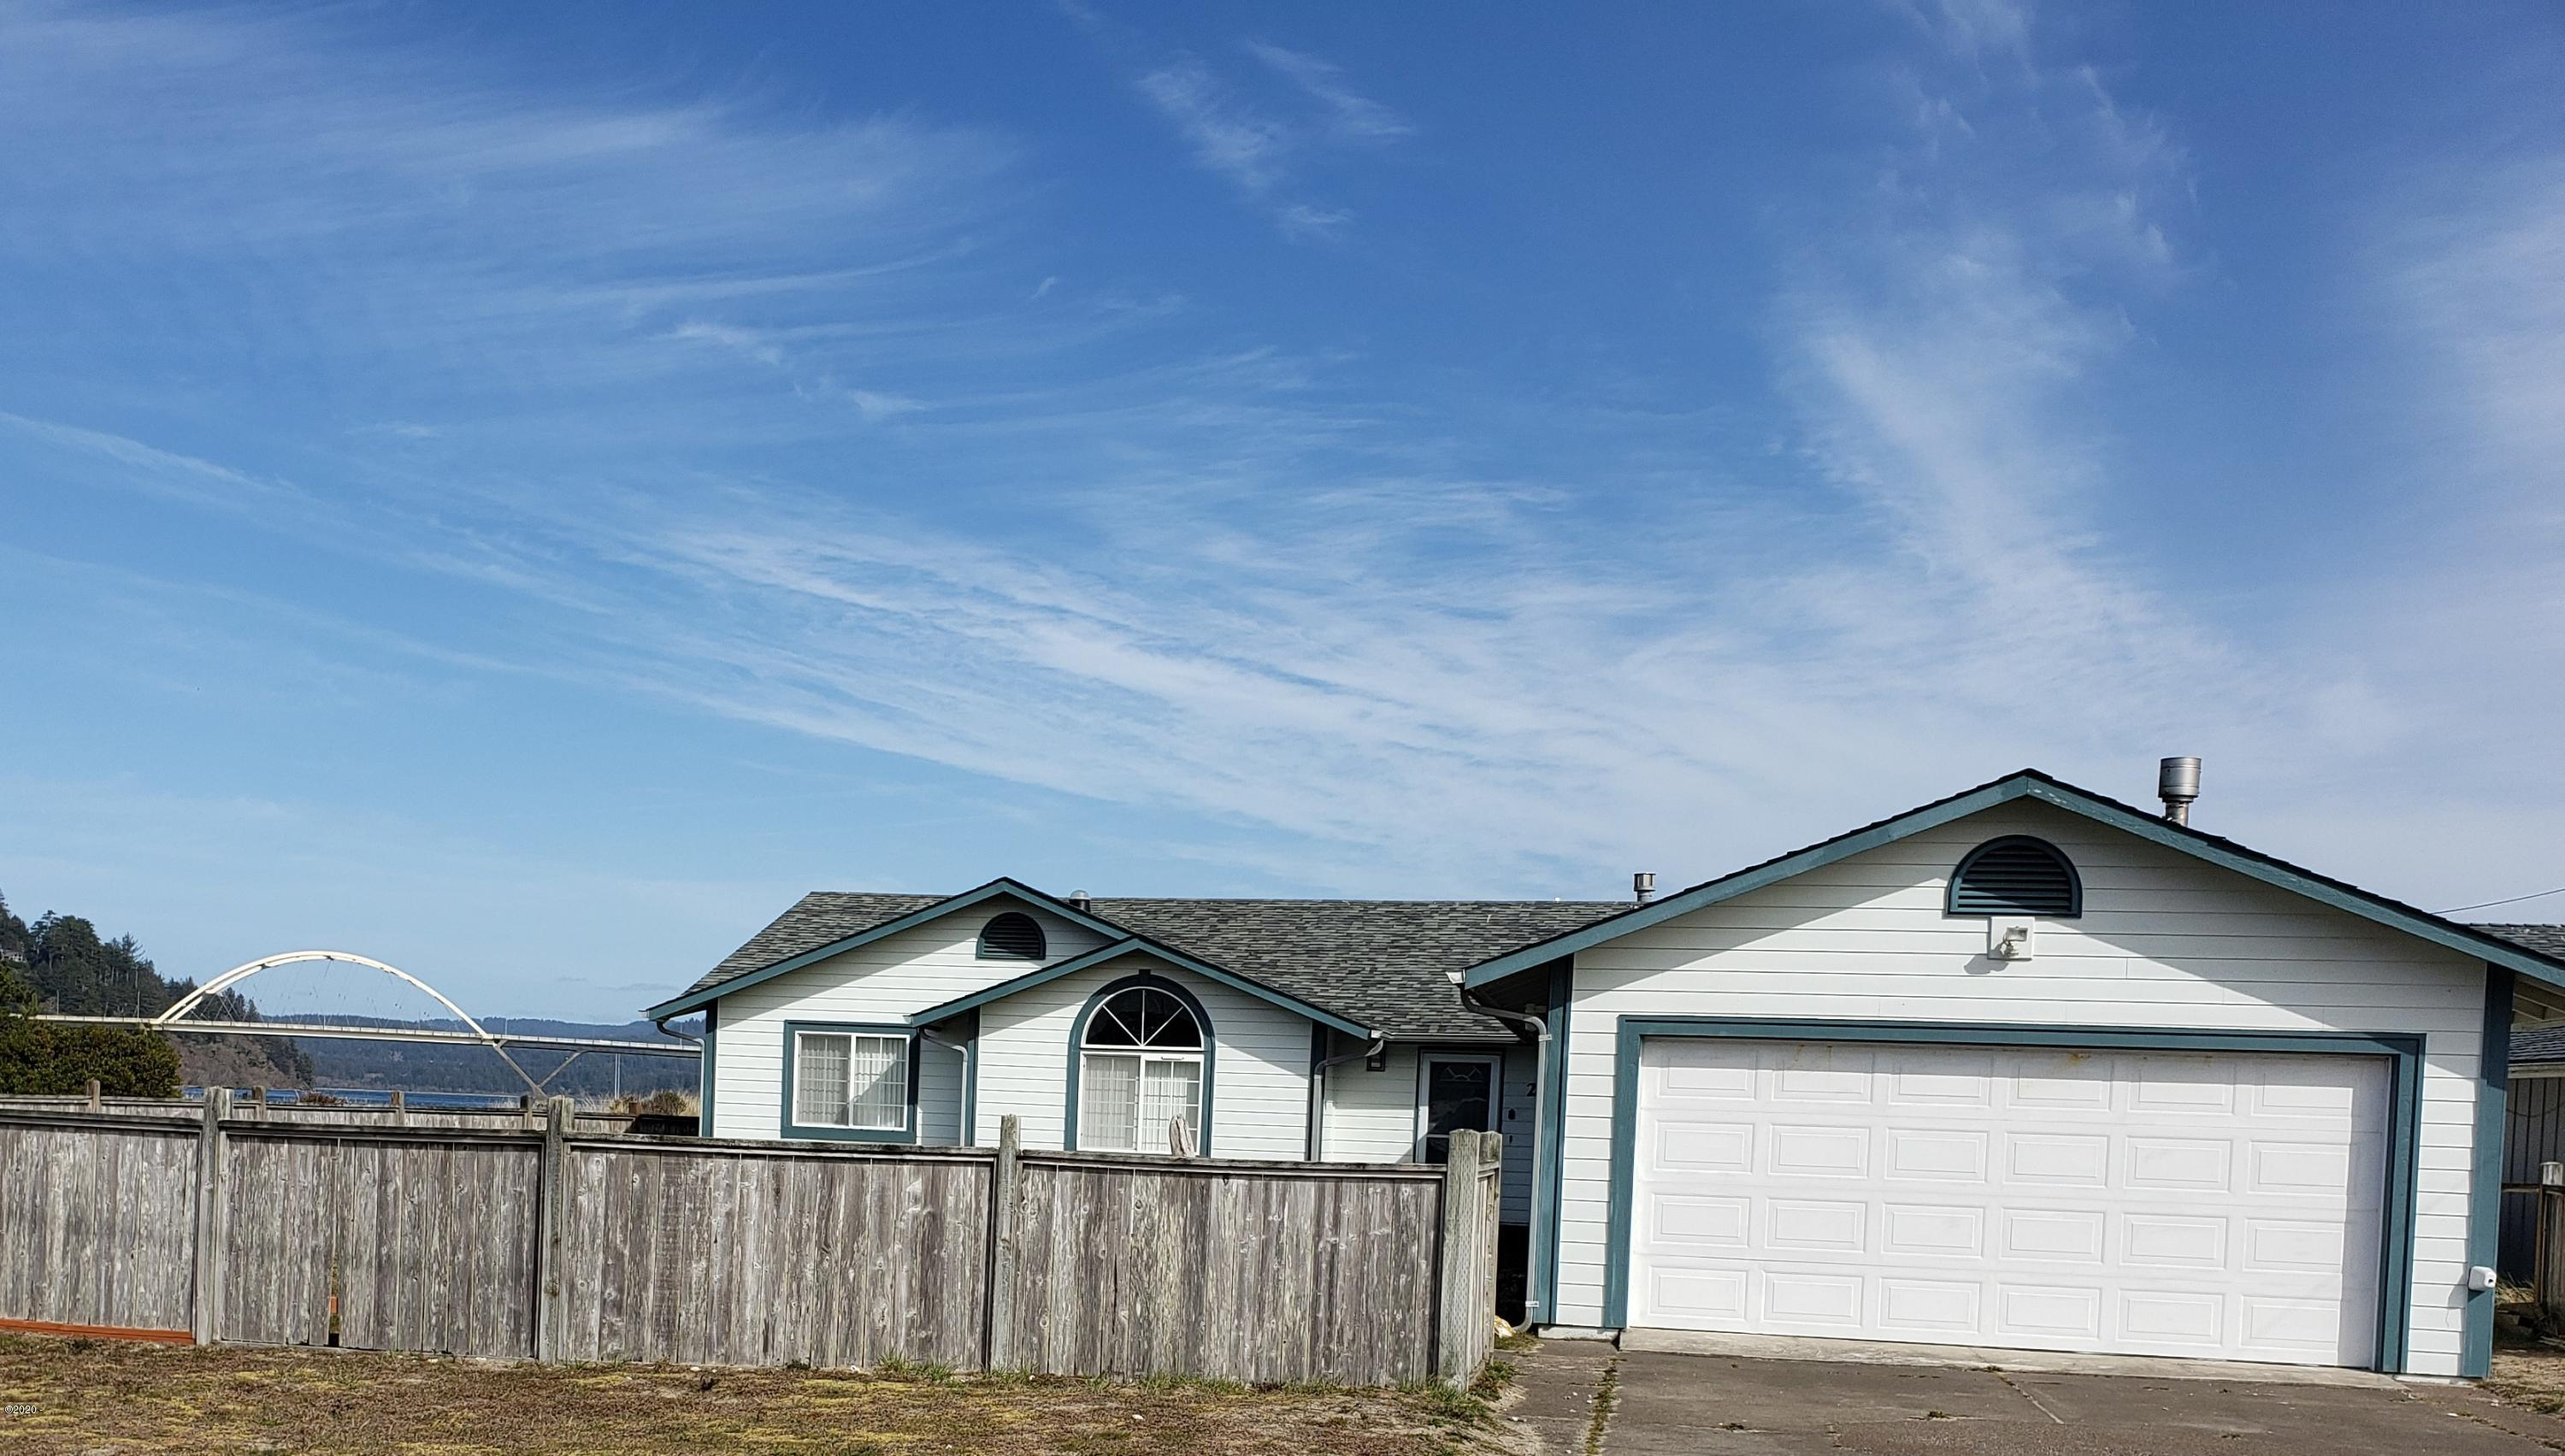 201 NW Alsea Bay Dr, Waldport, OR 97394 - St View